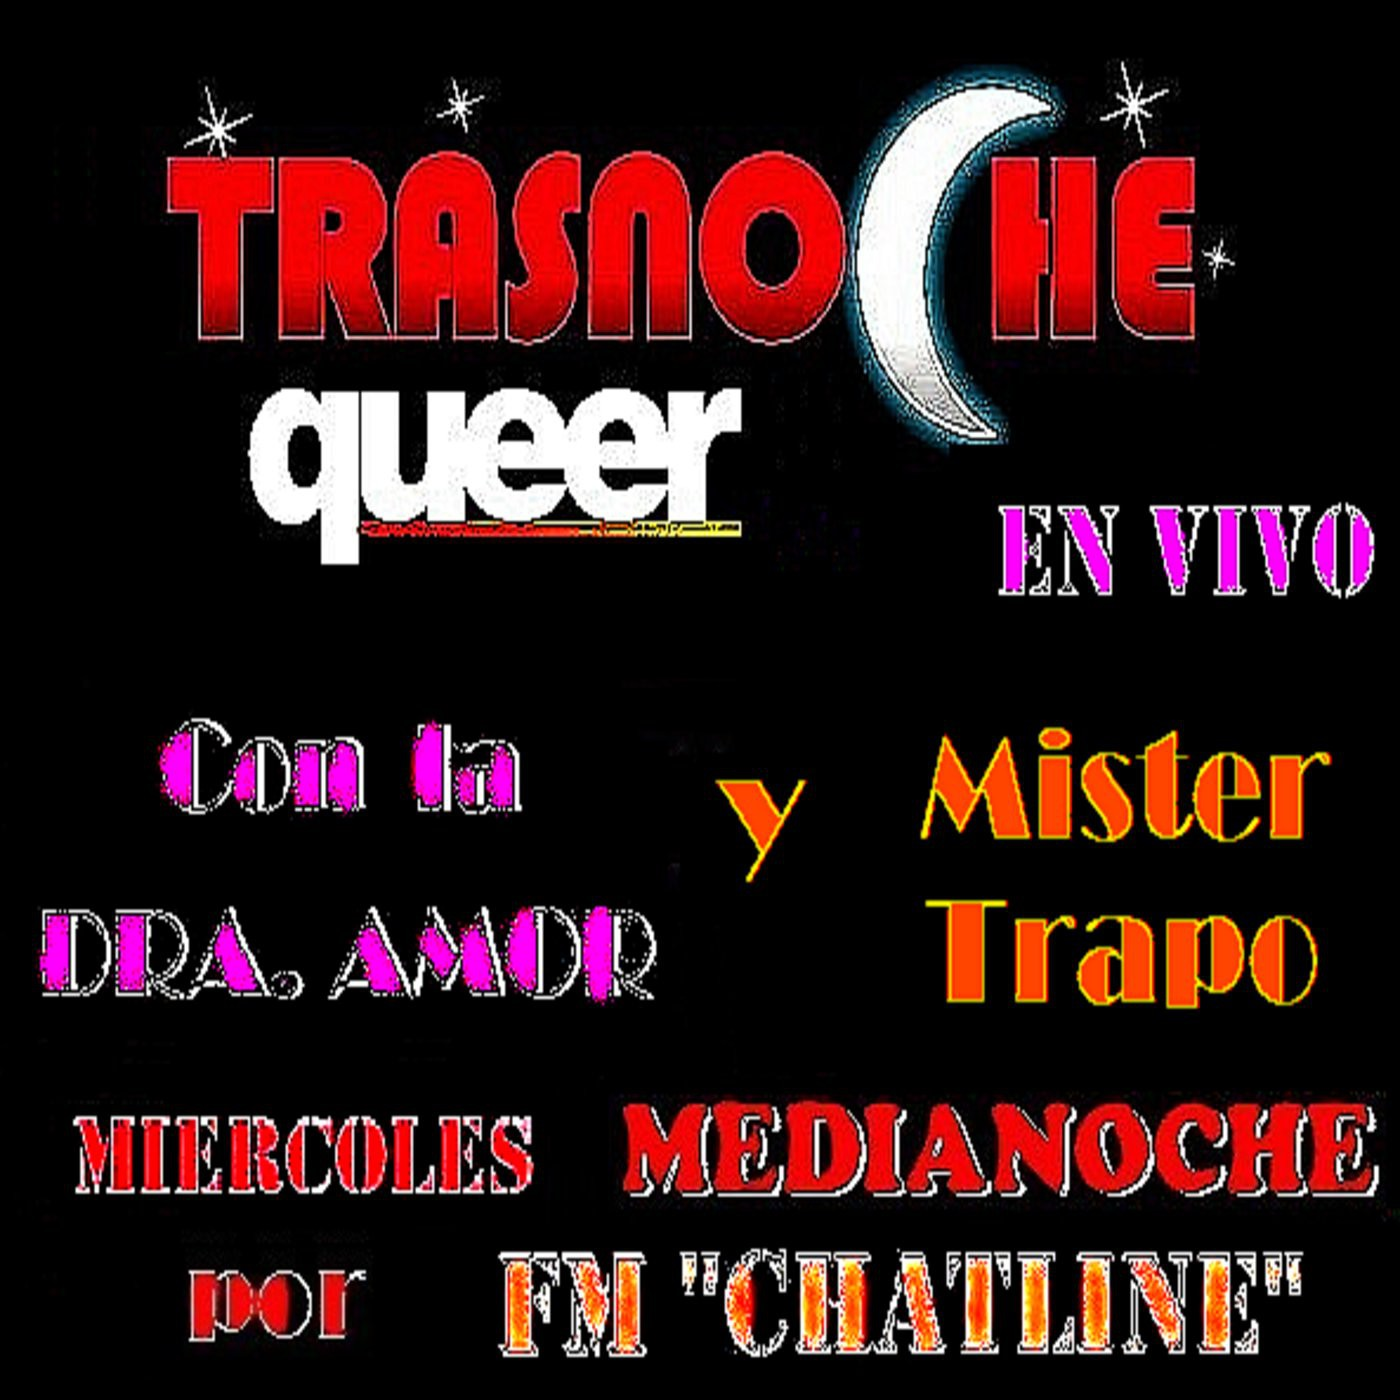 TRASNOCHE QUEER:Dra Amor